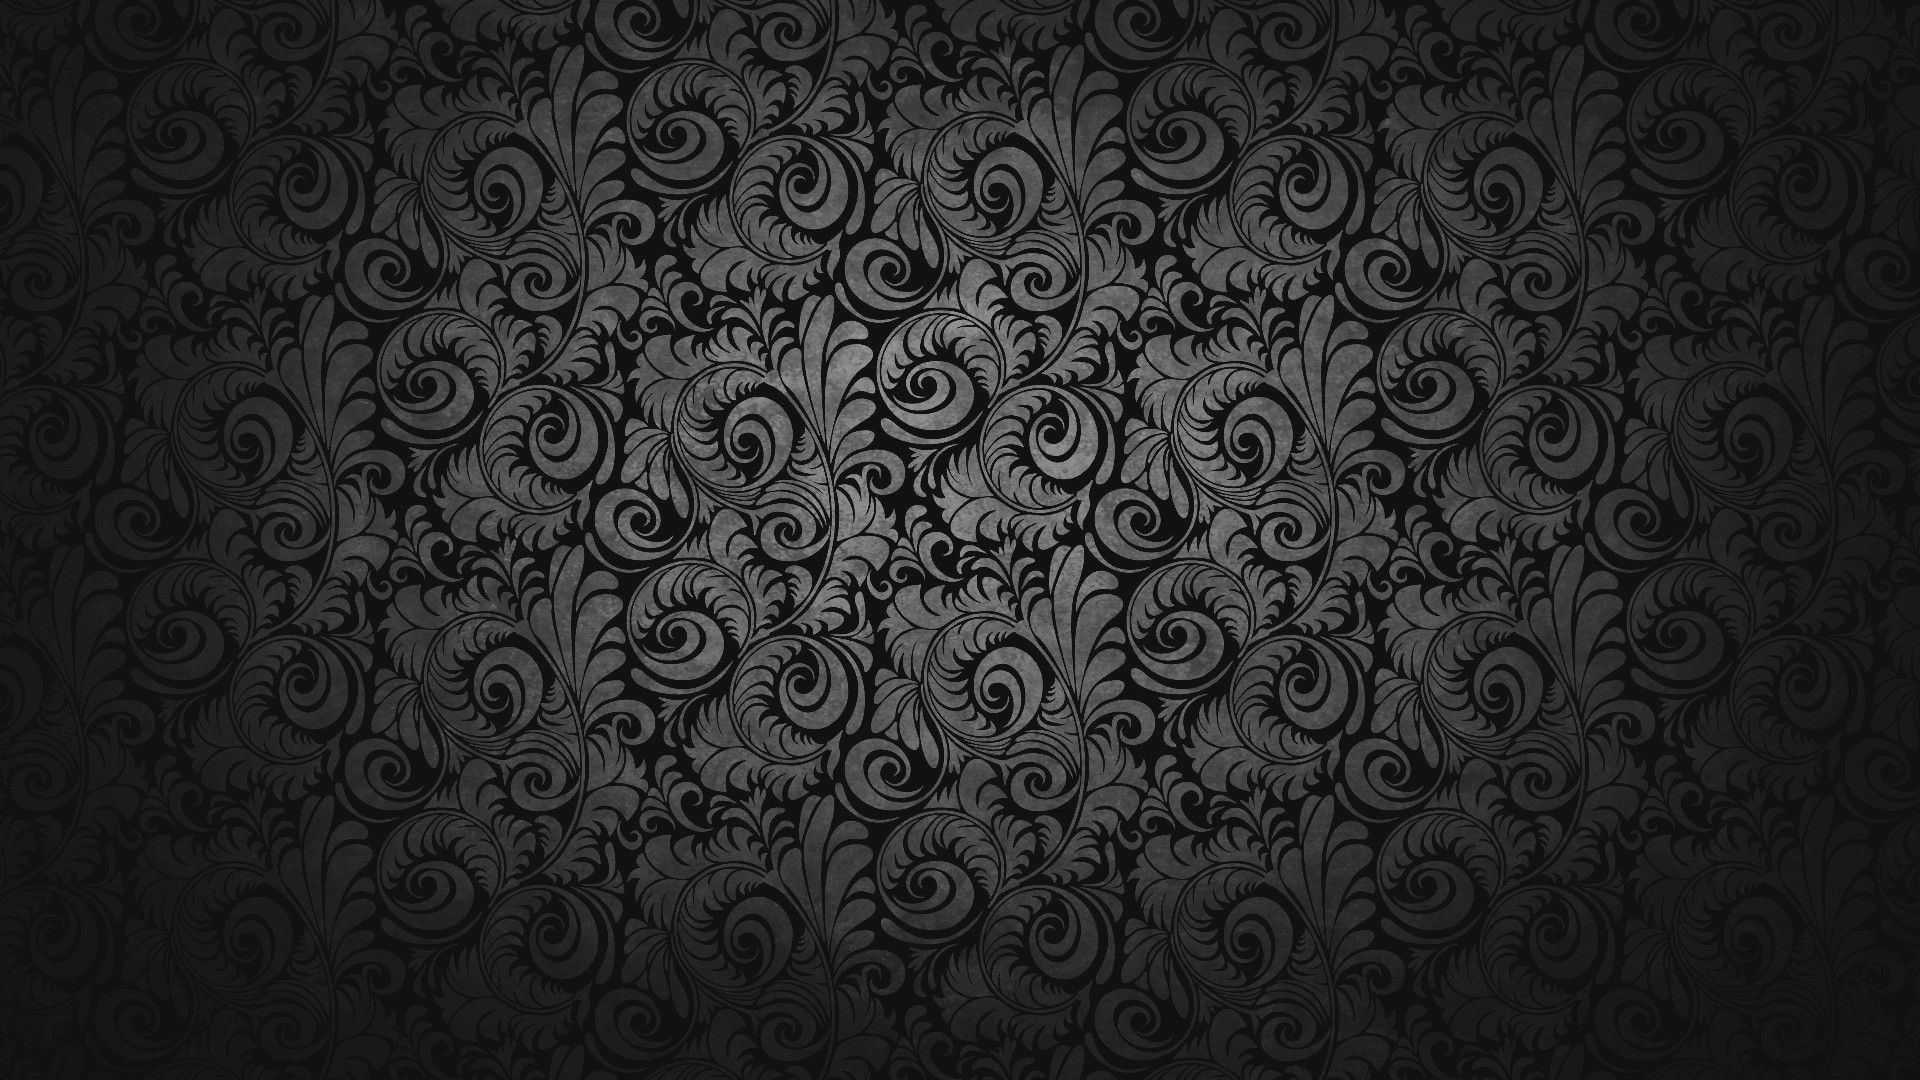 Hd Background Wallpaper Black Background Wallpaper Black